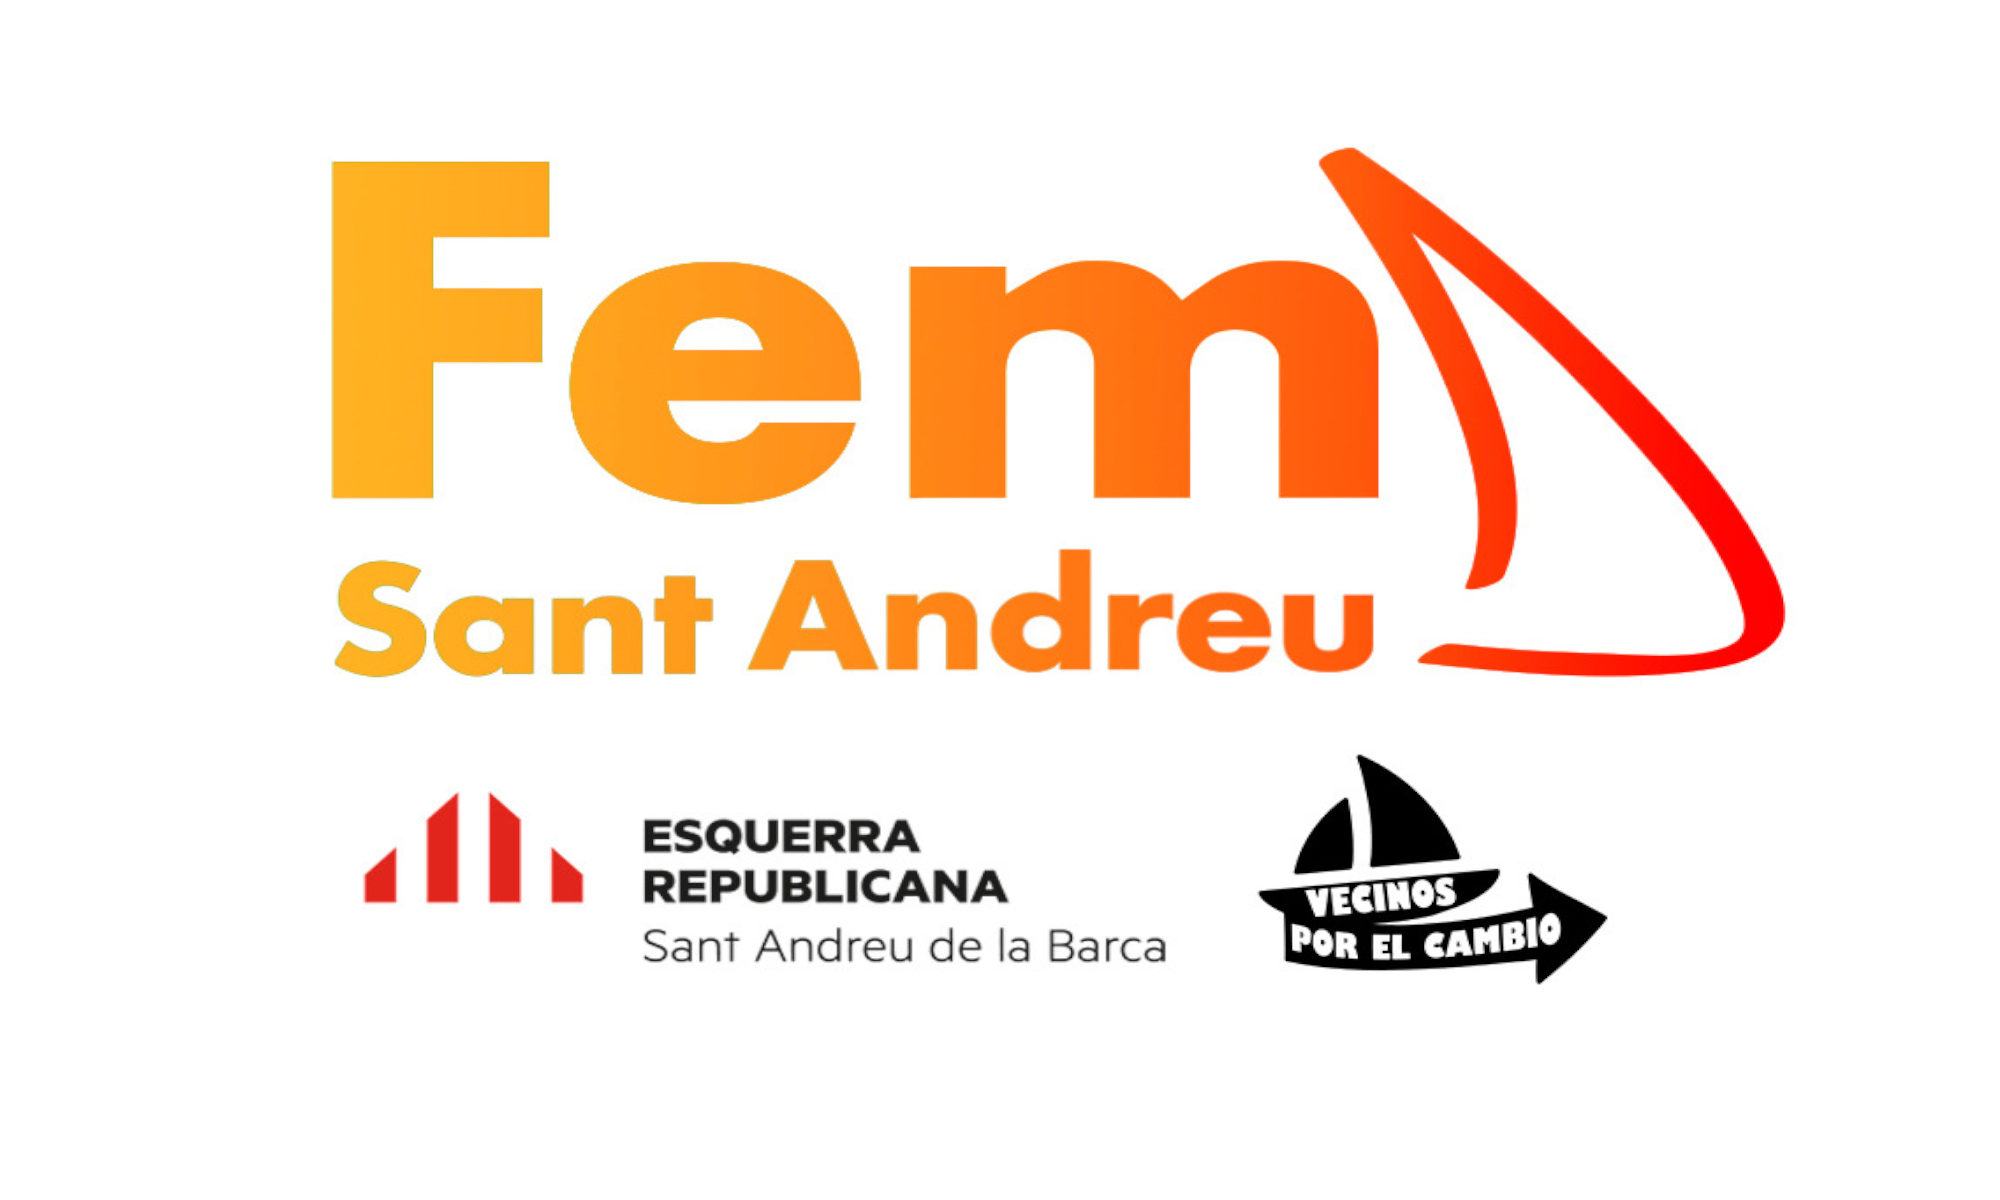 femsantandreu.cat